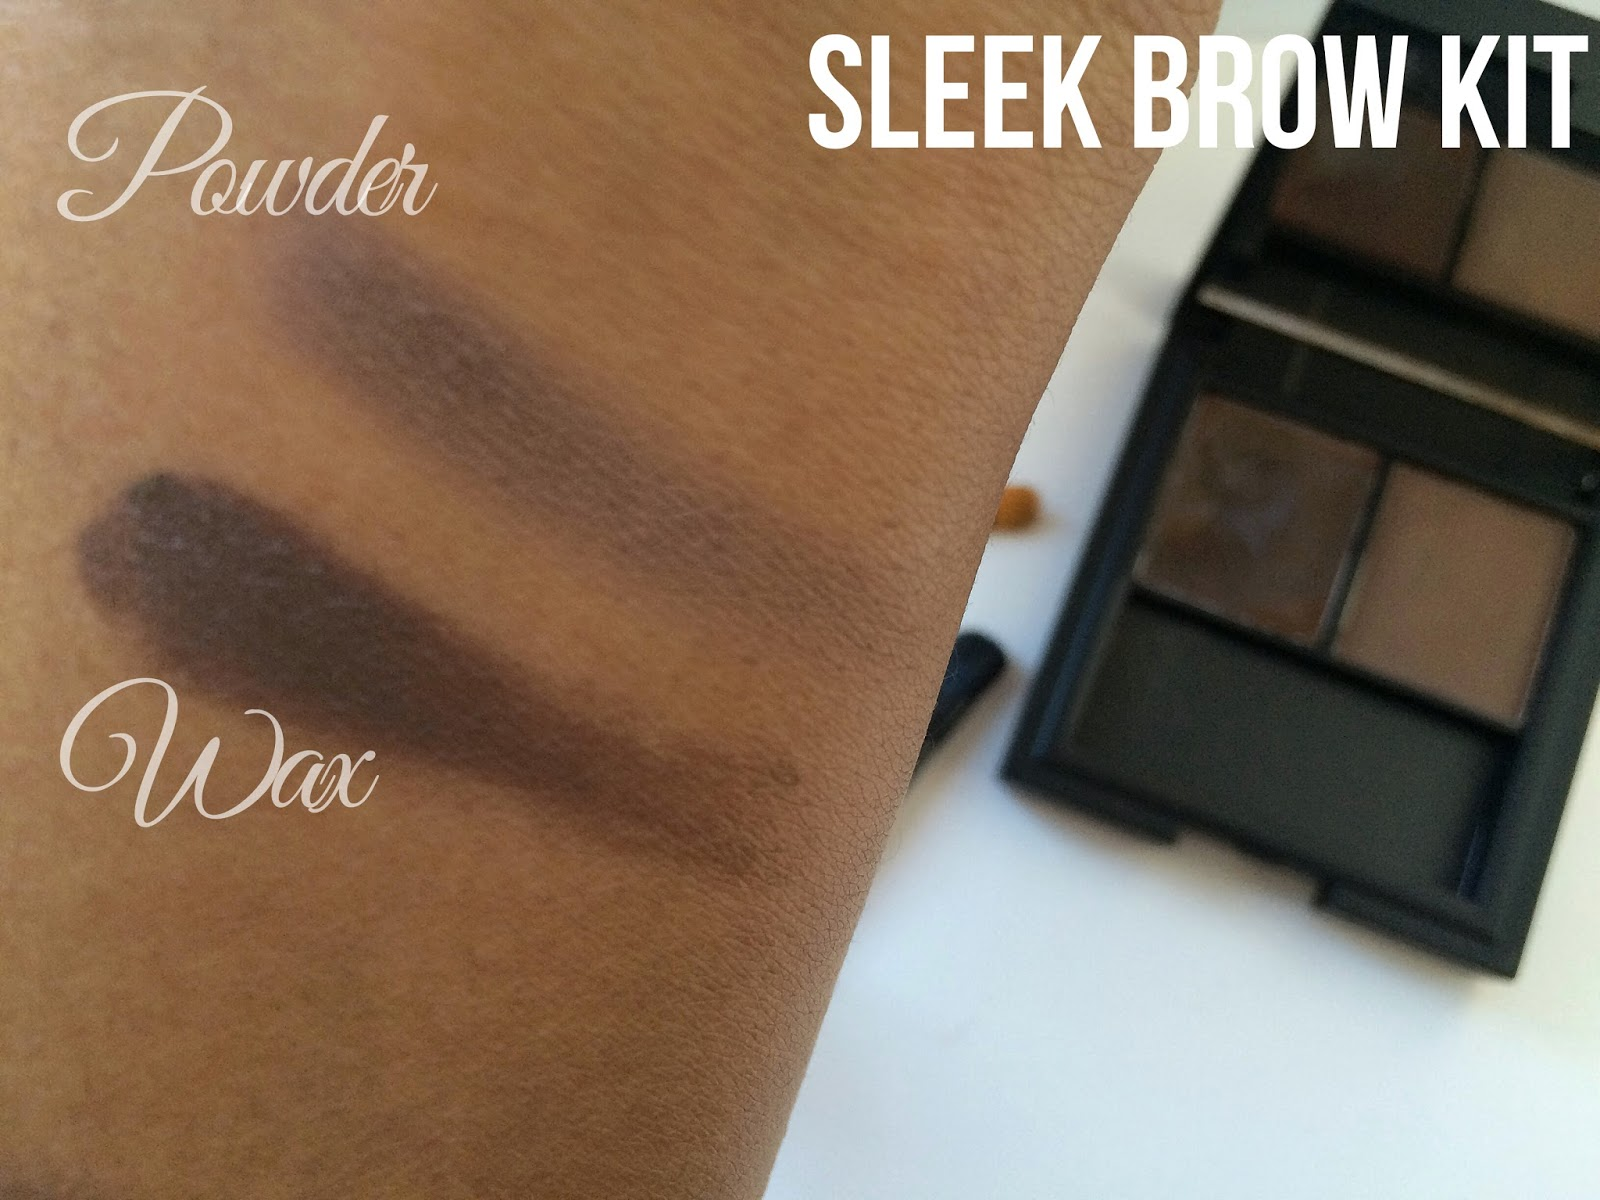 Splurge Or Save | Benefit Brow Zings vs Sleek Brow Kit | ShaunicaLyn